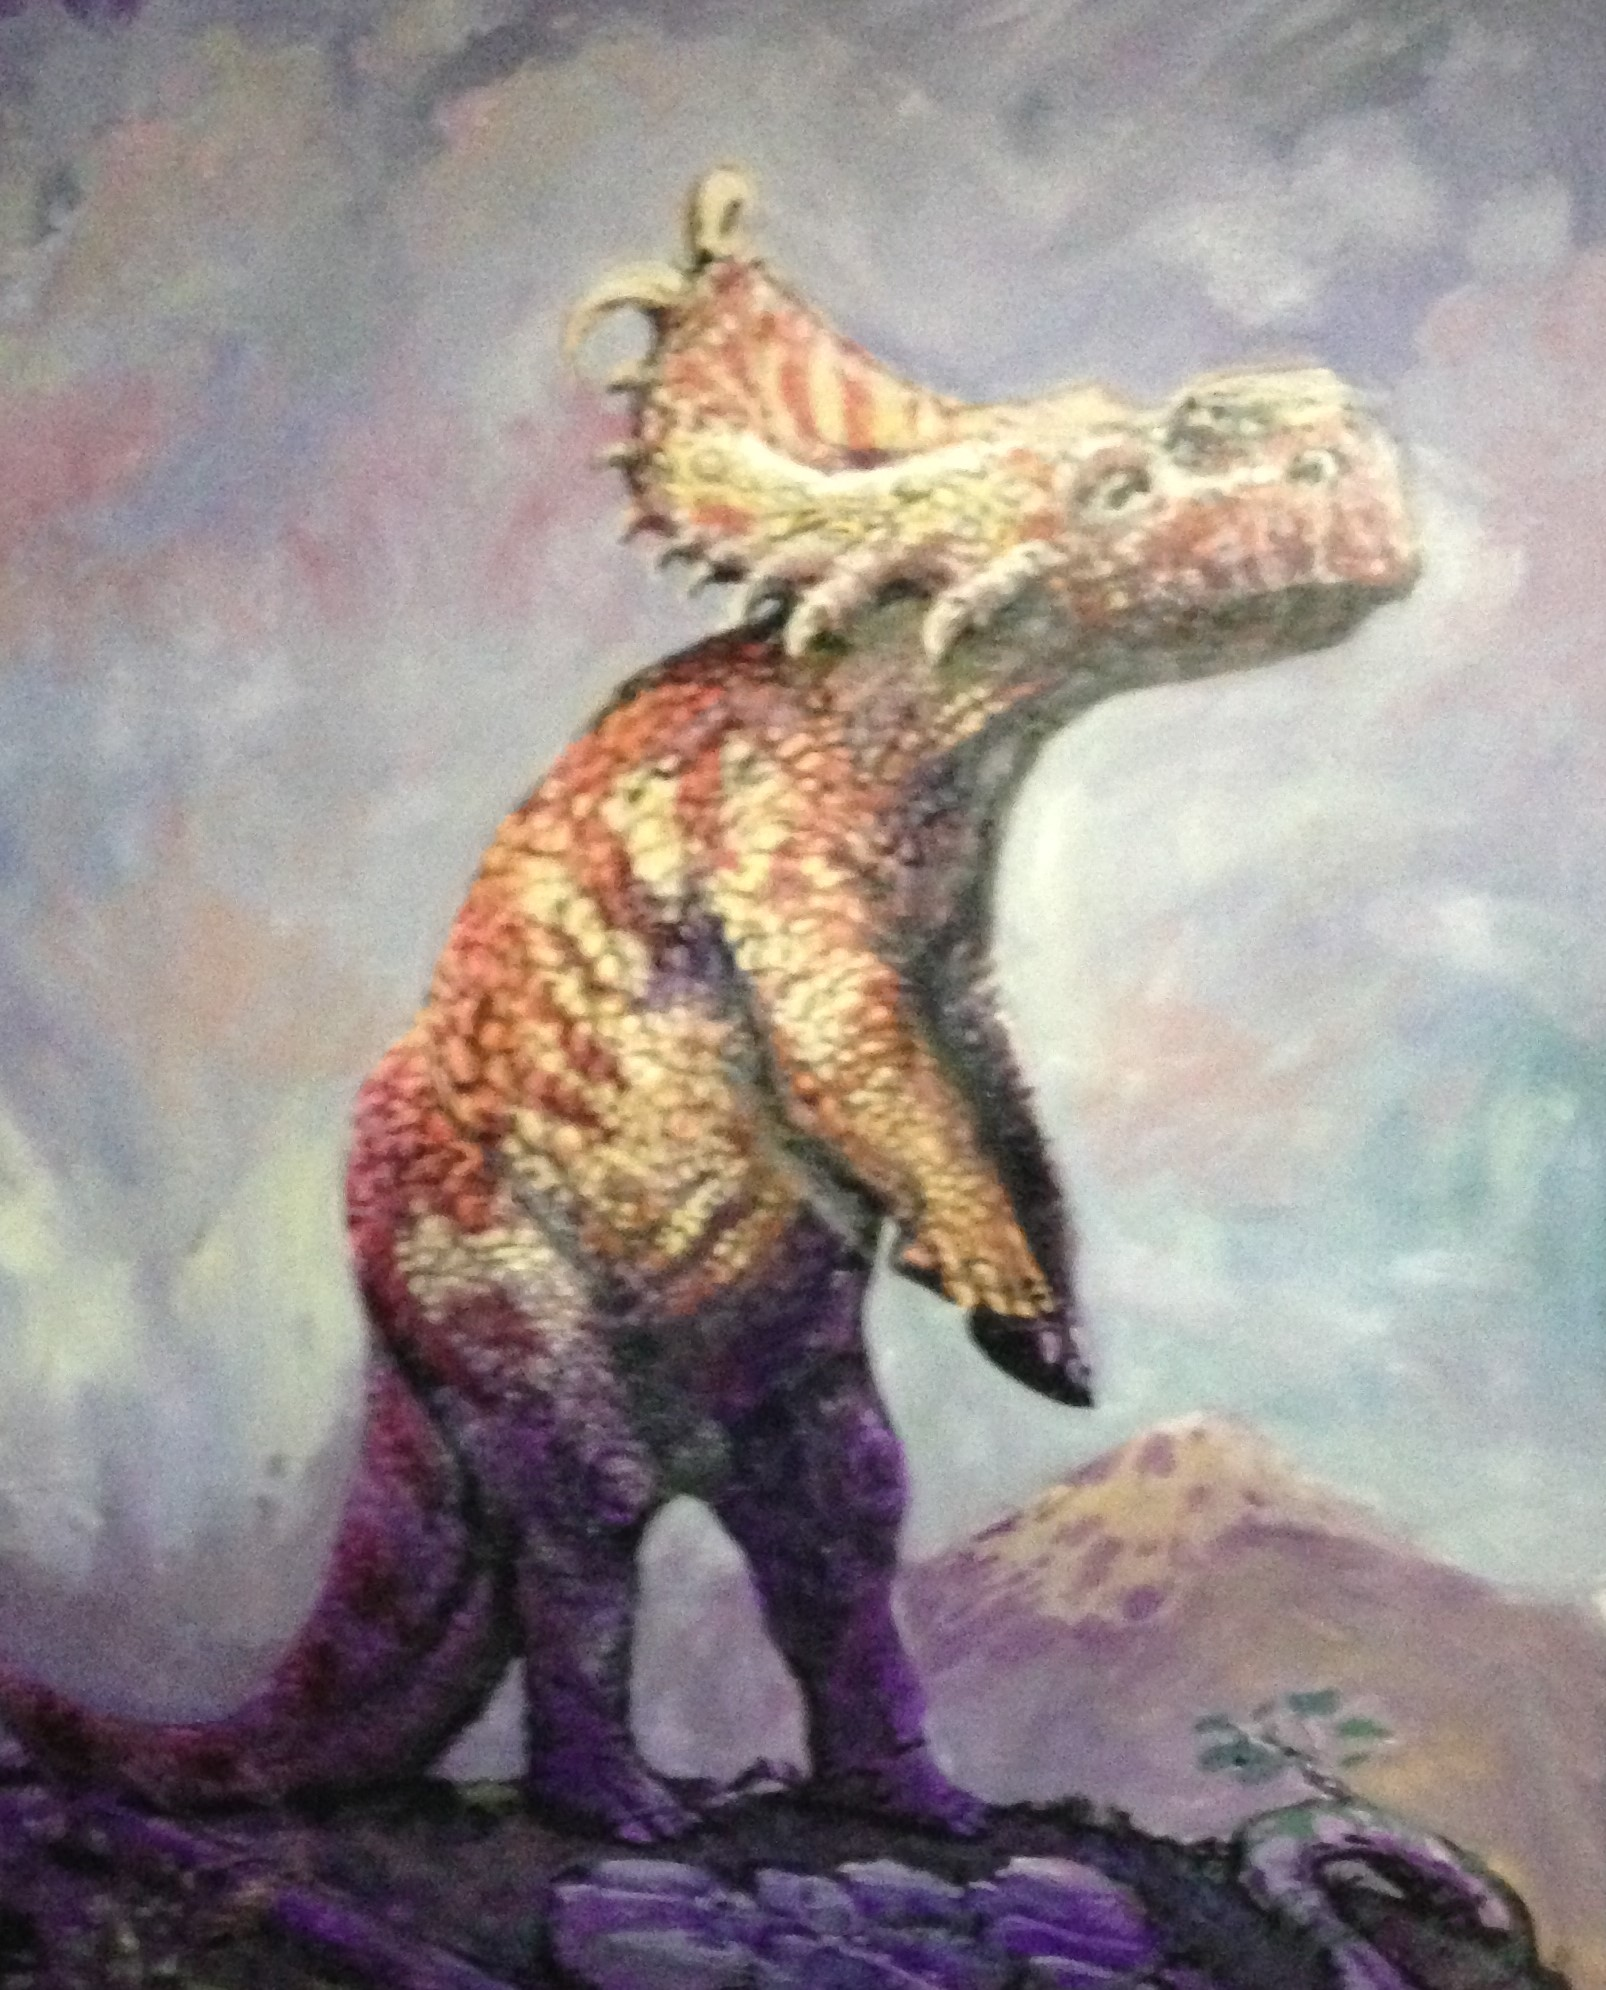 pachyrhinosaurus painted at the Dan dan aykroyd ATHE PHILIP J. CURRIE DINOSAUR MUSEUM 2015